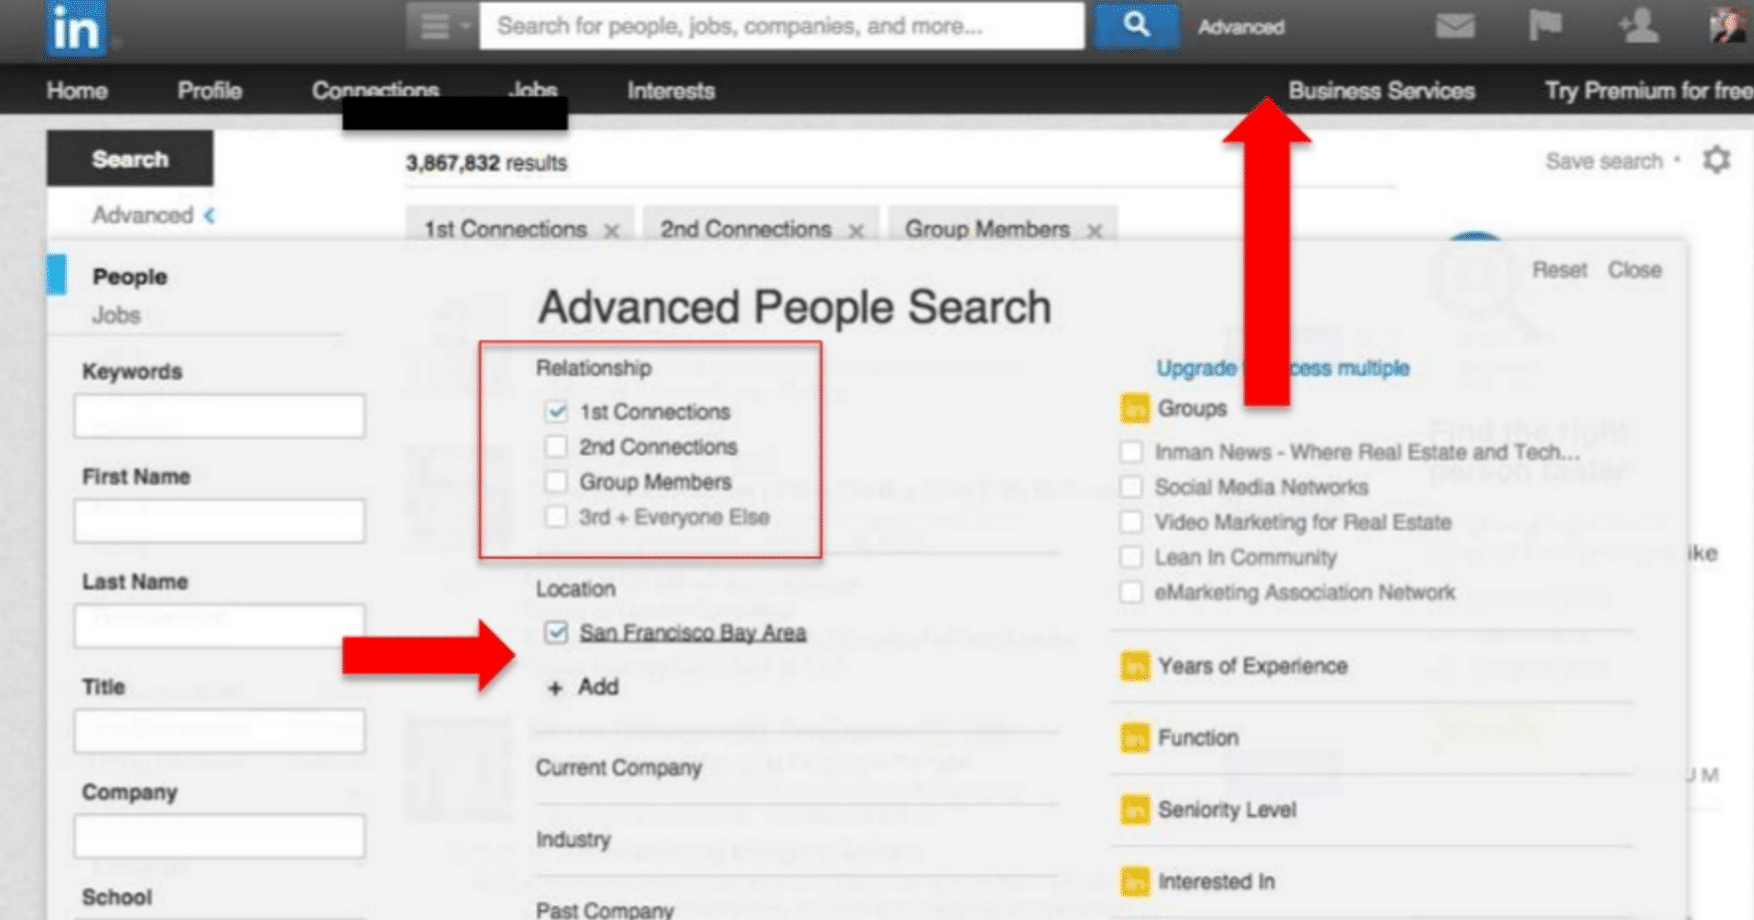 Use the advanced search function on LinkedIn for prospecting.